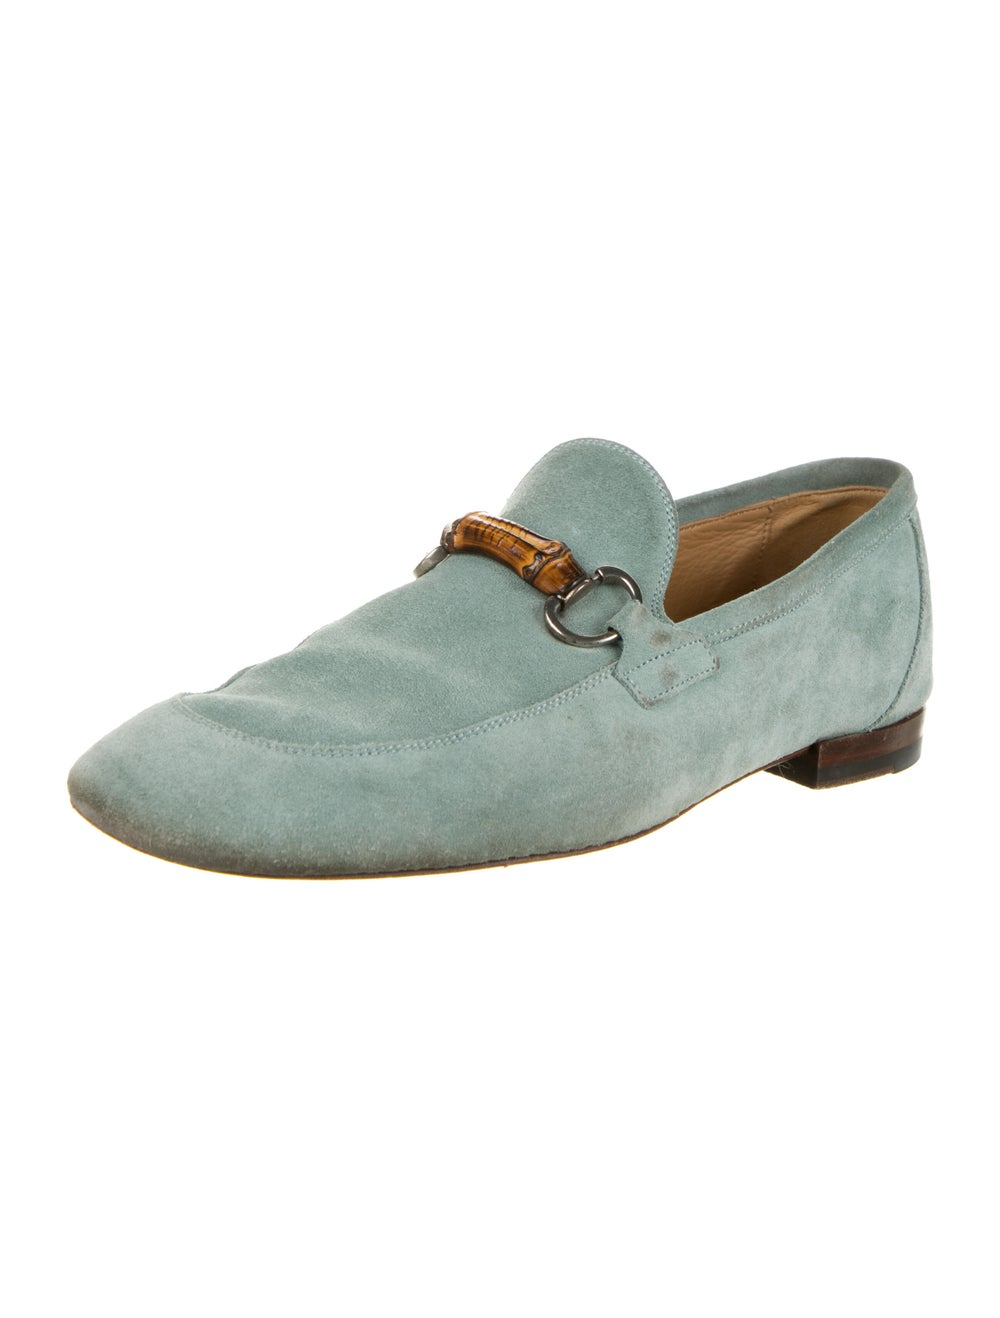 Gucci Horsebit Accent Suede Loafers Green - image 2